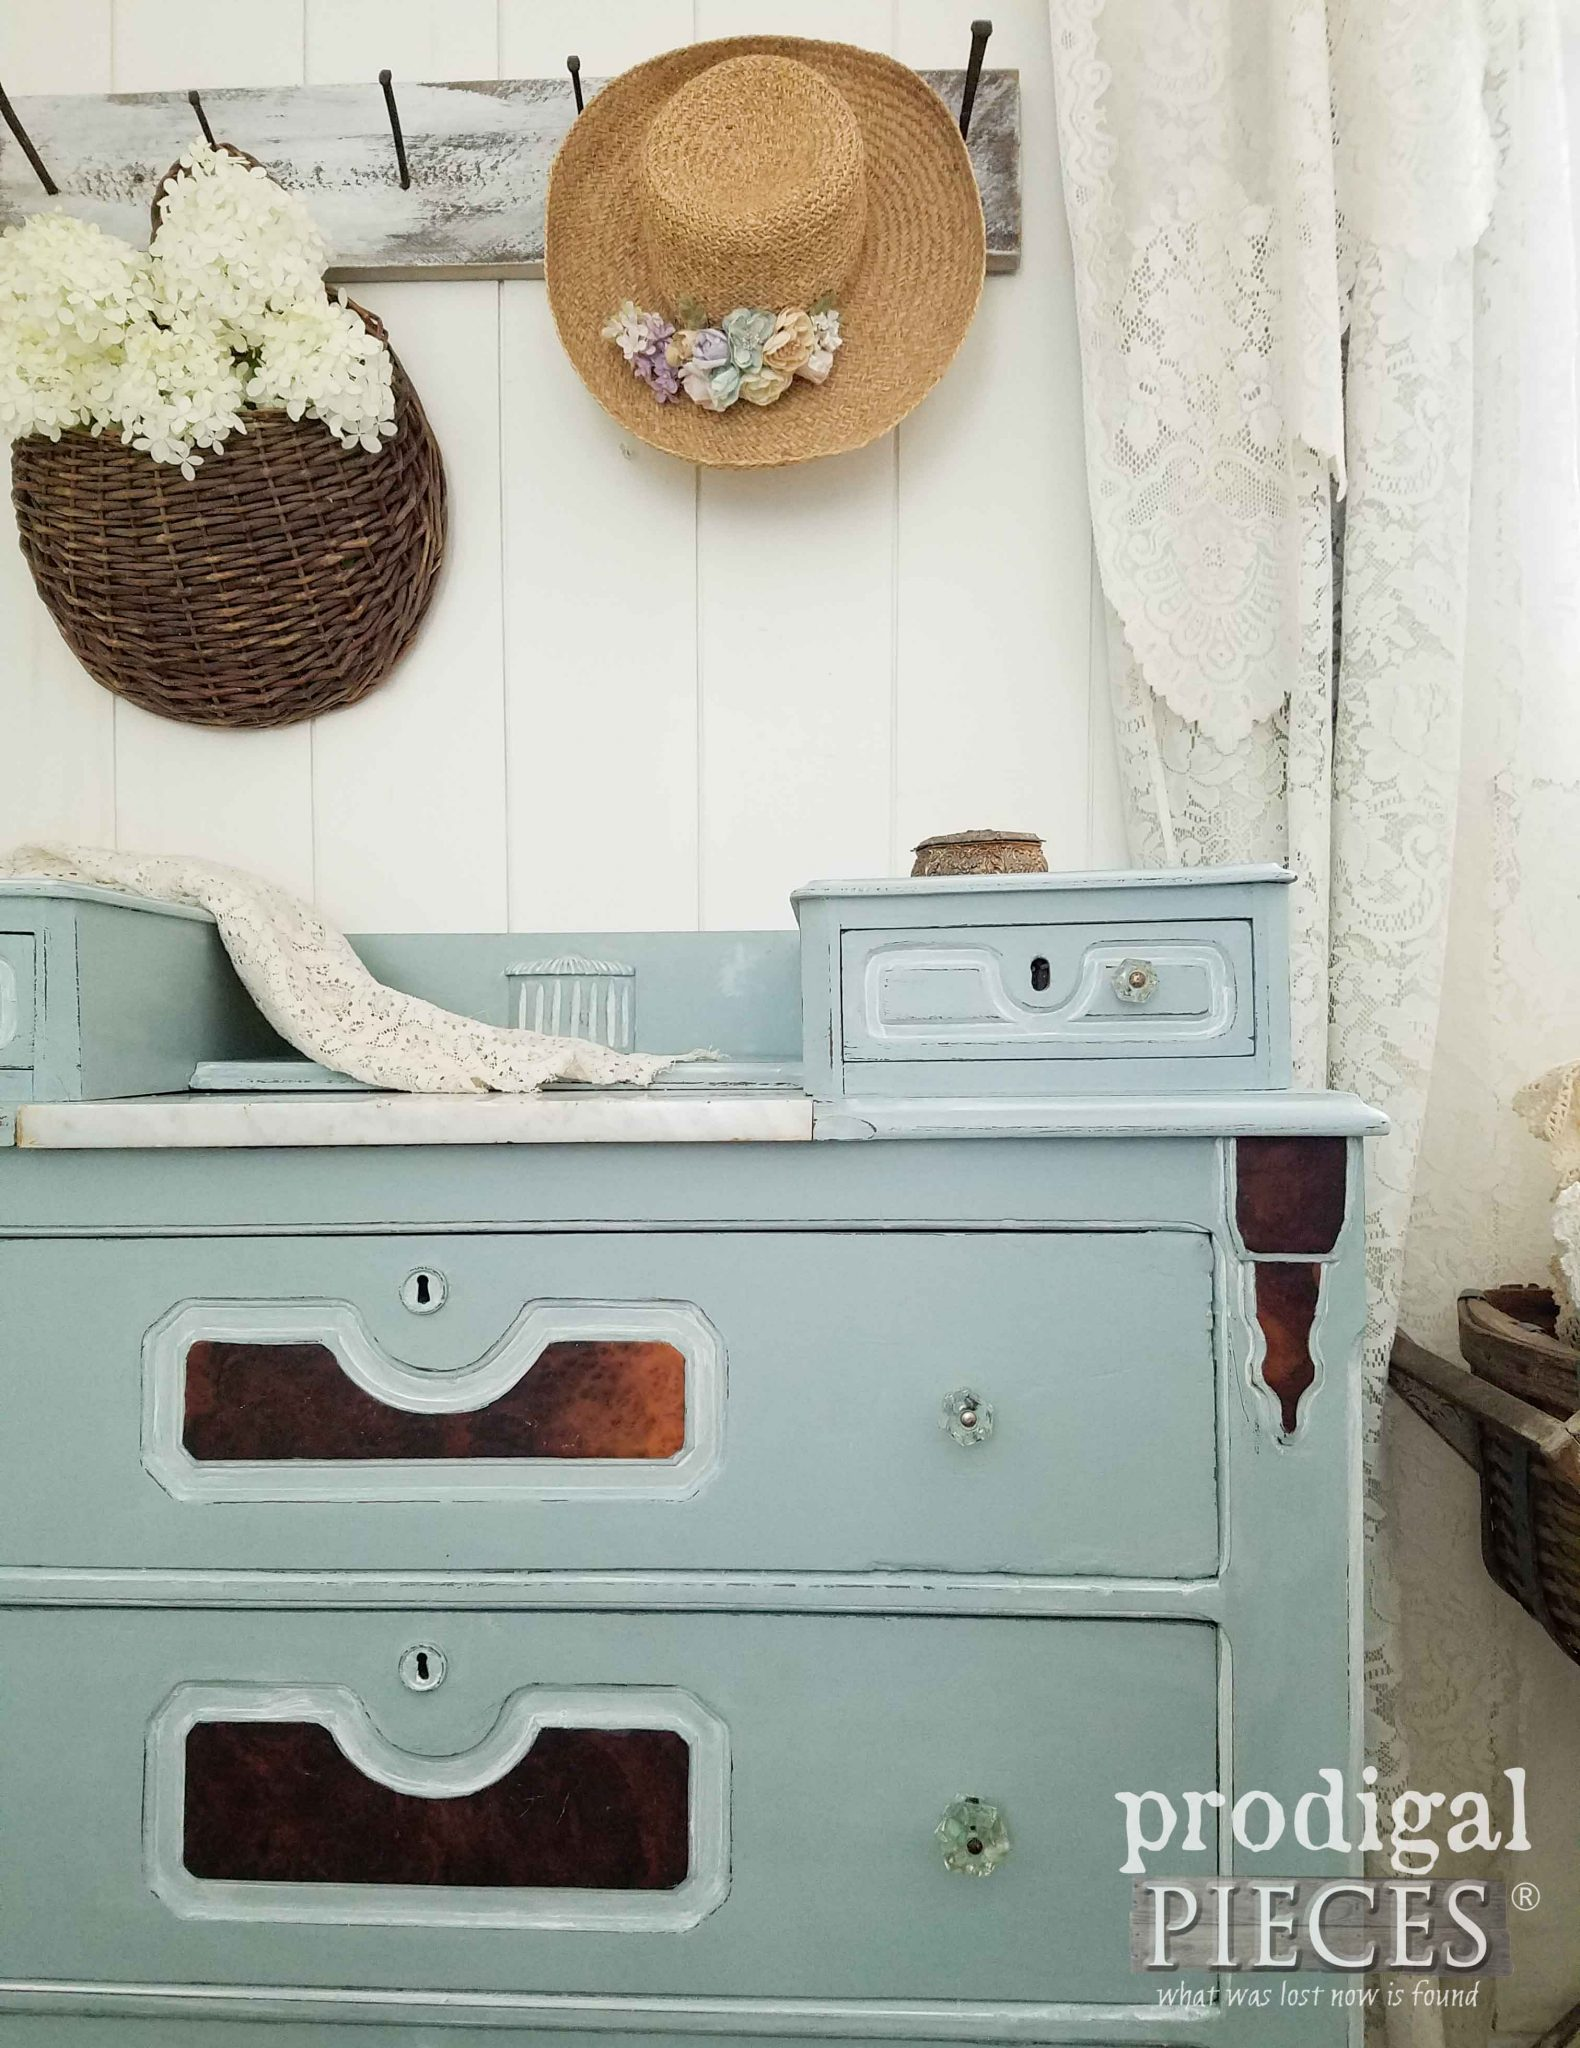 Glazed Antique Chest Using DecoArt Chalky Finish Paints by Prodigal Pieces | prodigalpieces.com